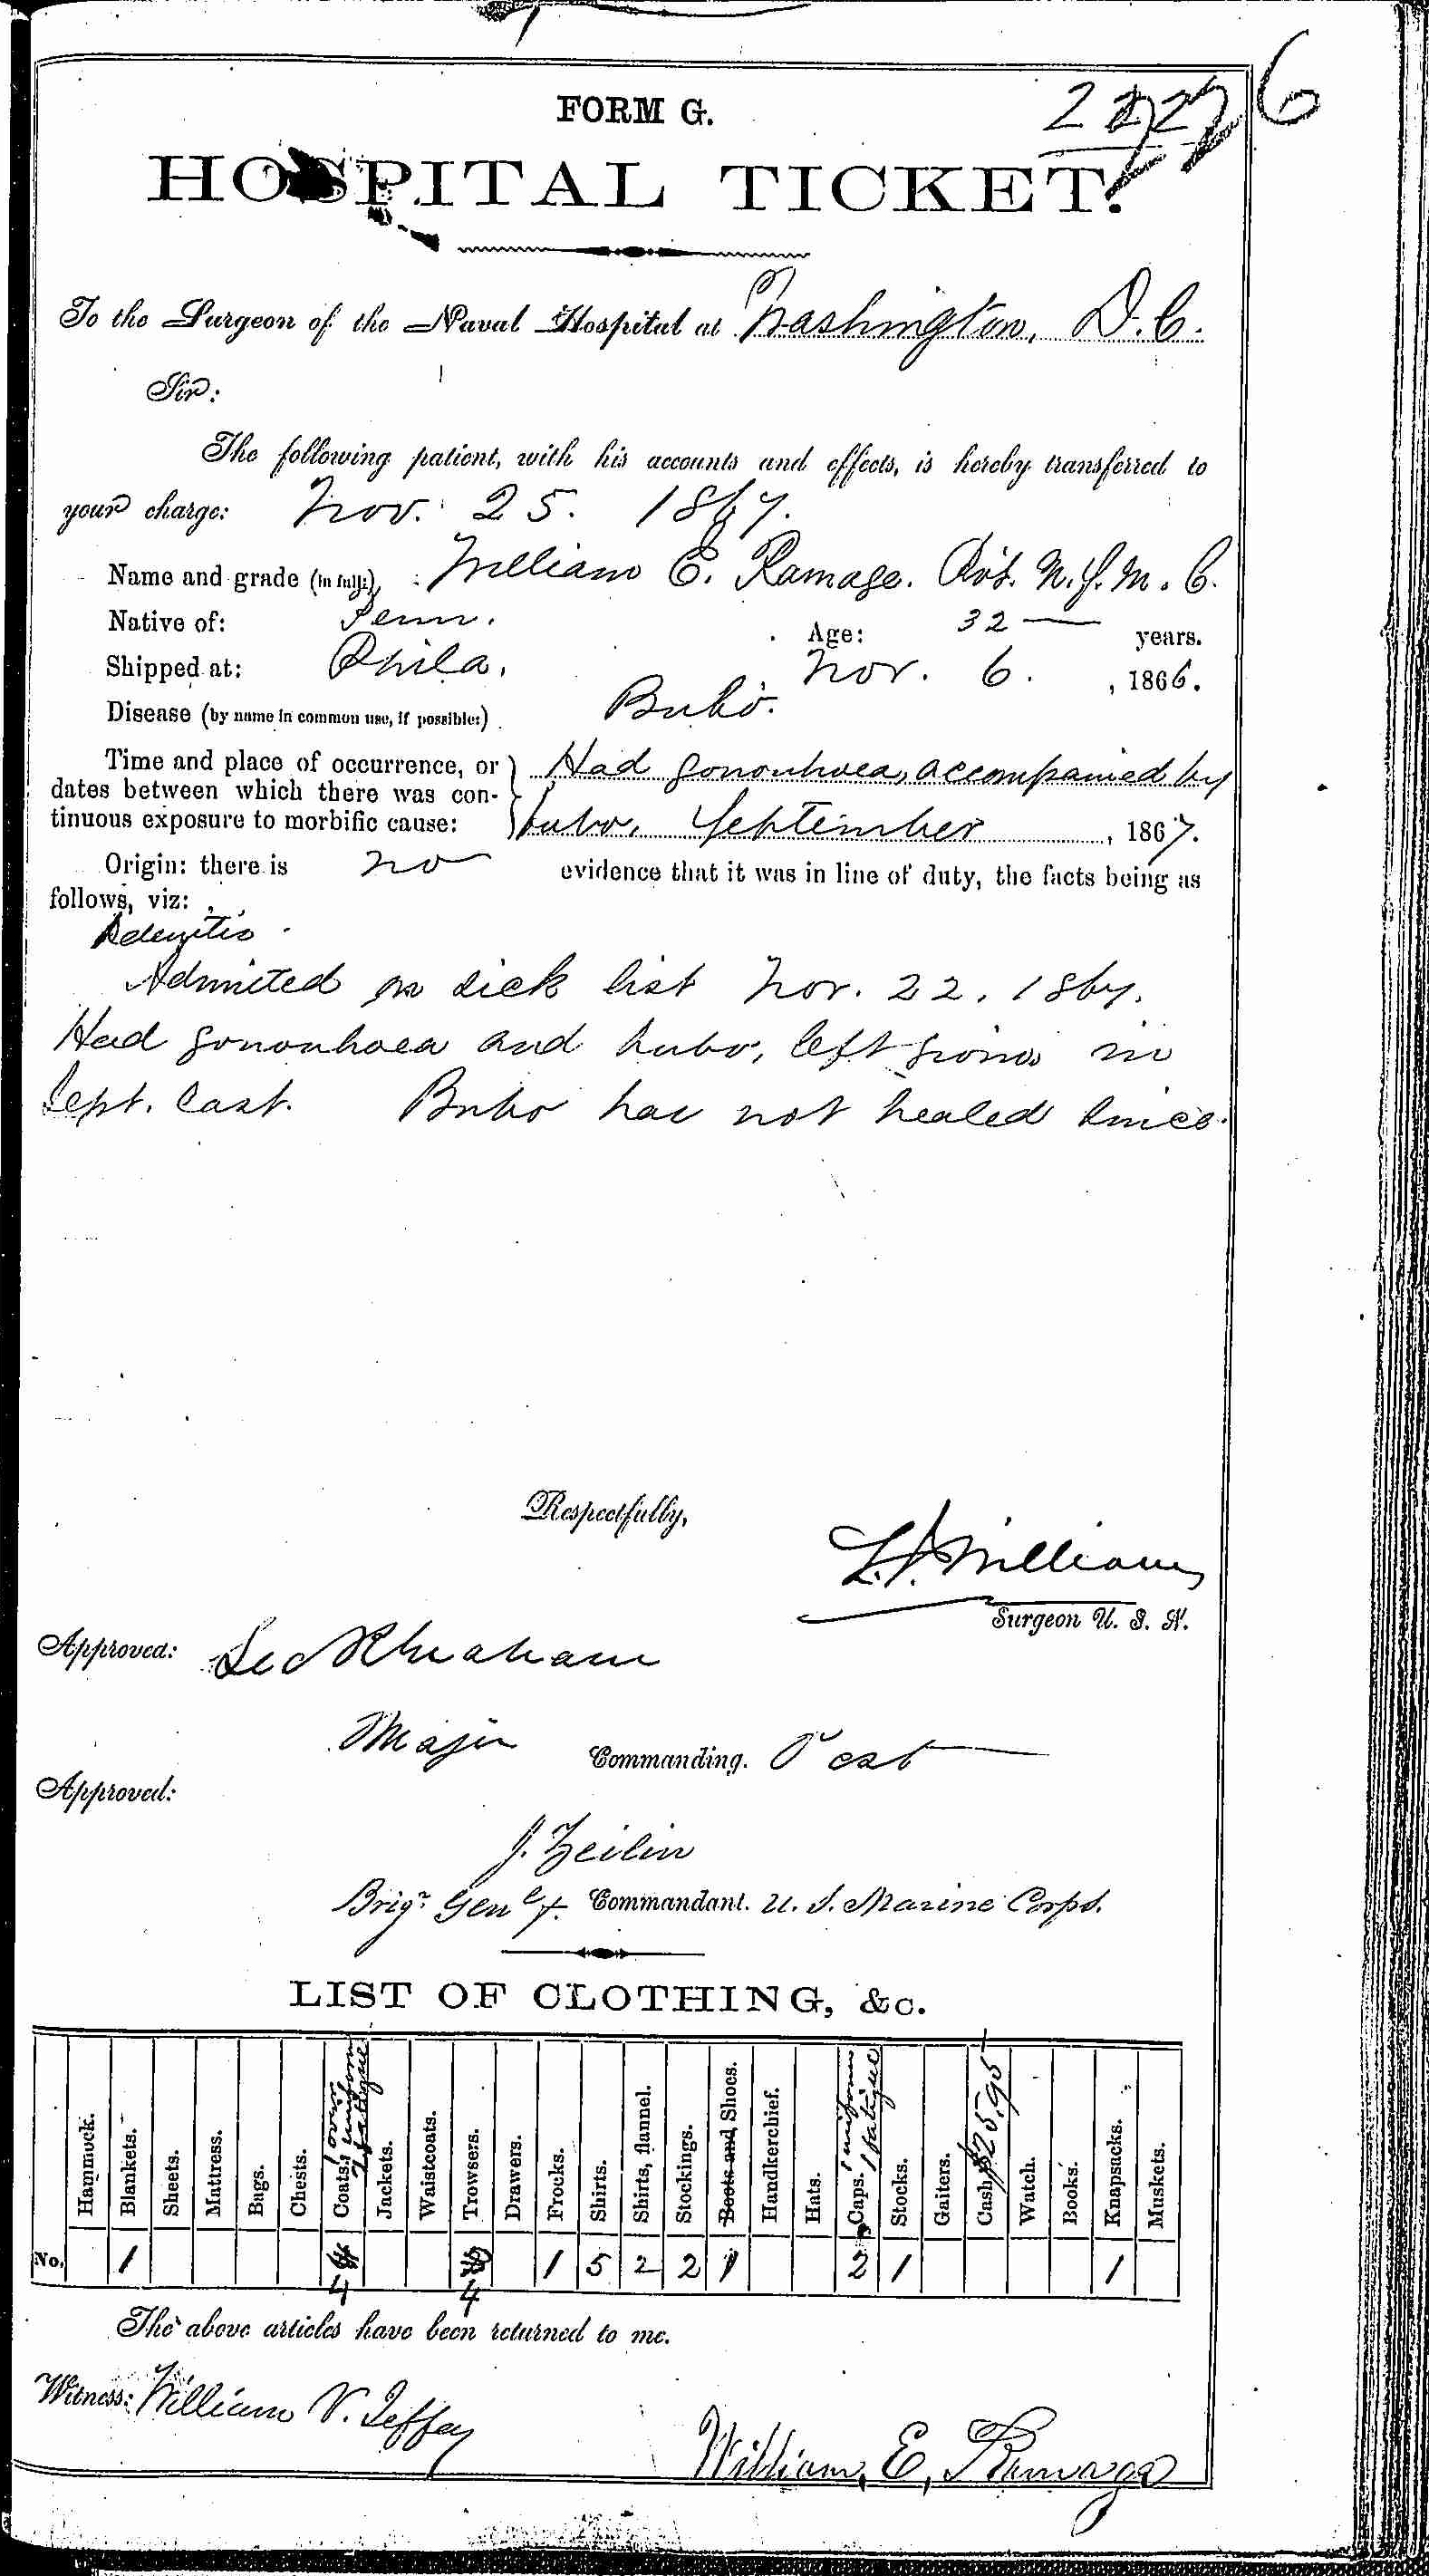 Entry for William E. Ramage (page 1 of 2) in the log Hospital Tickets and Case Papers - Naval Hospital - Washington, D.C. - 1866-68